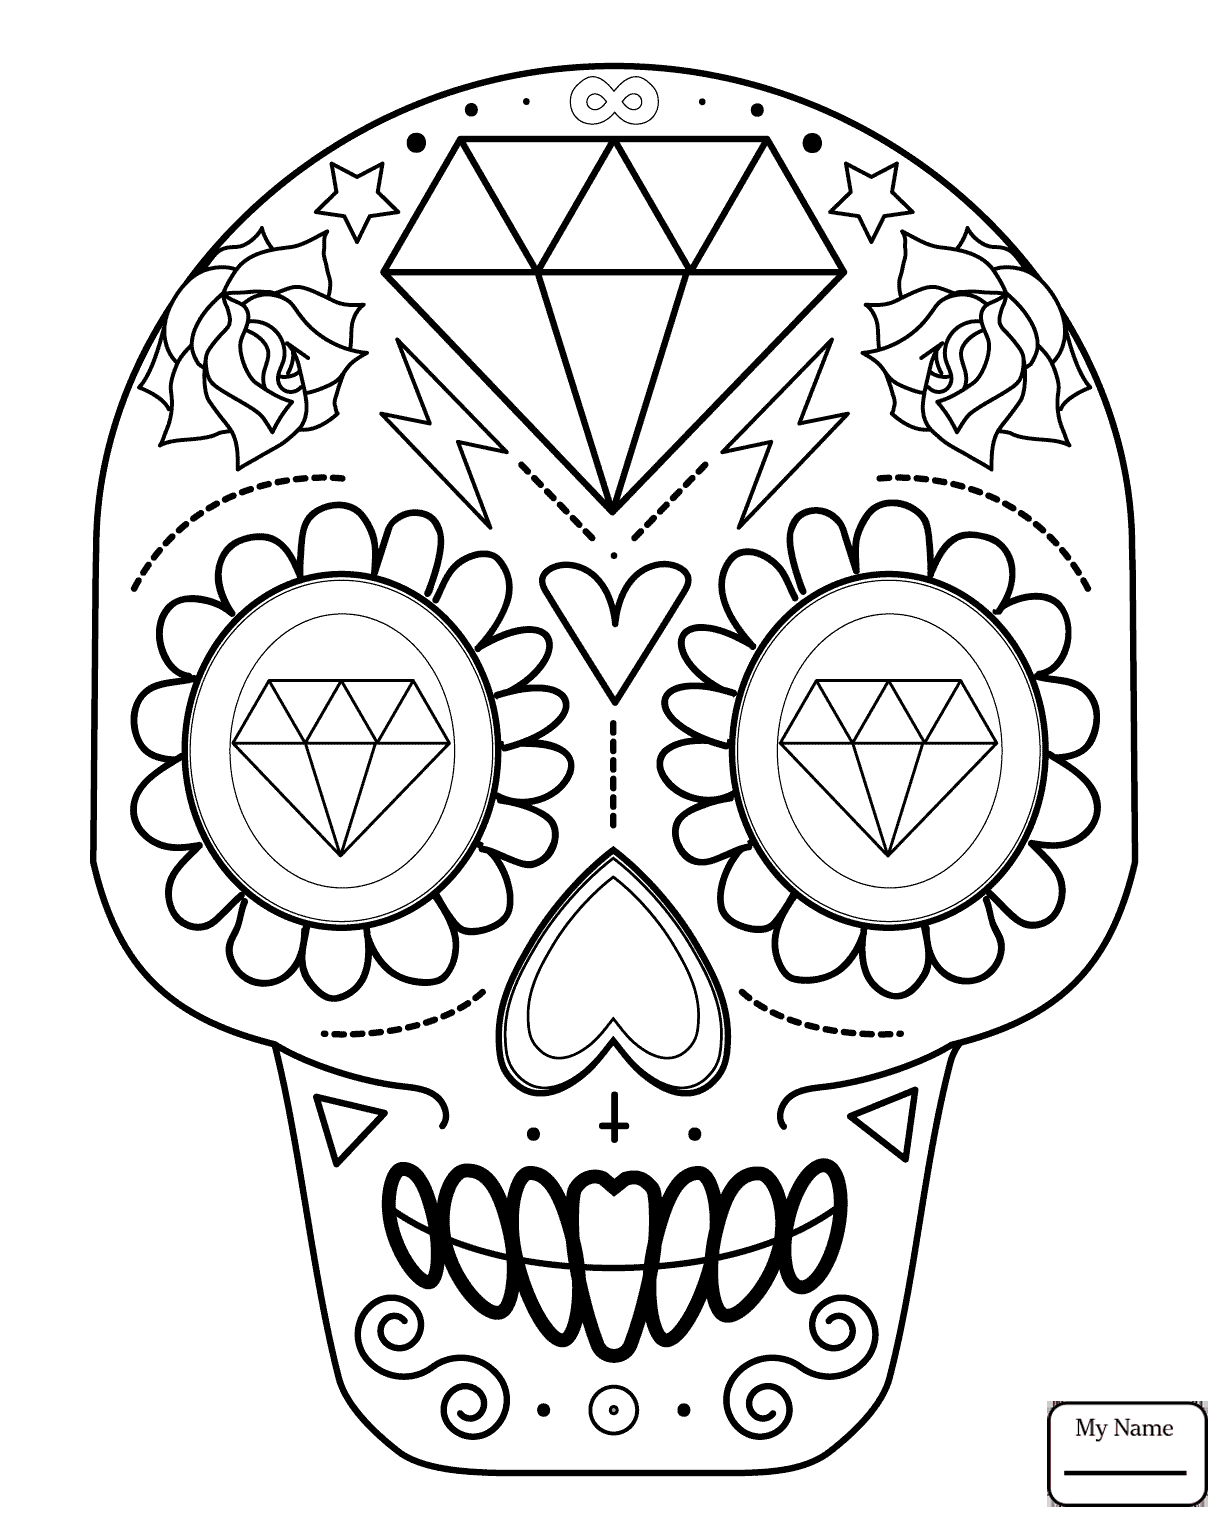 Simple Skull Side Drawing At Getdrawings Com Free For Personal Use